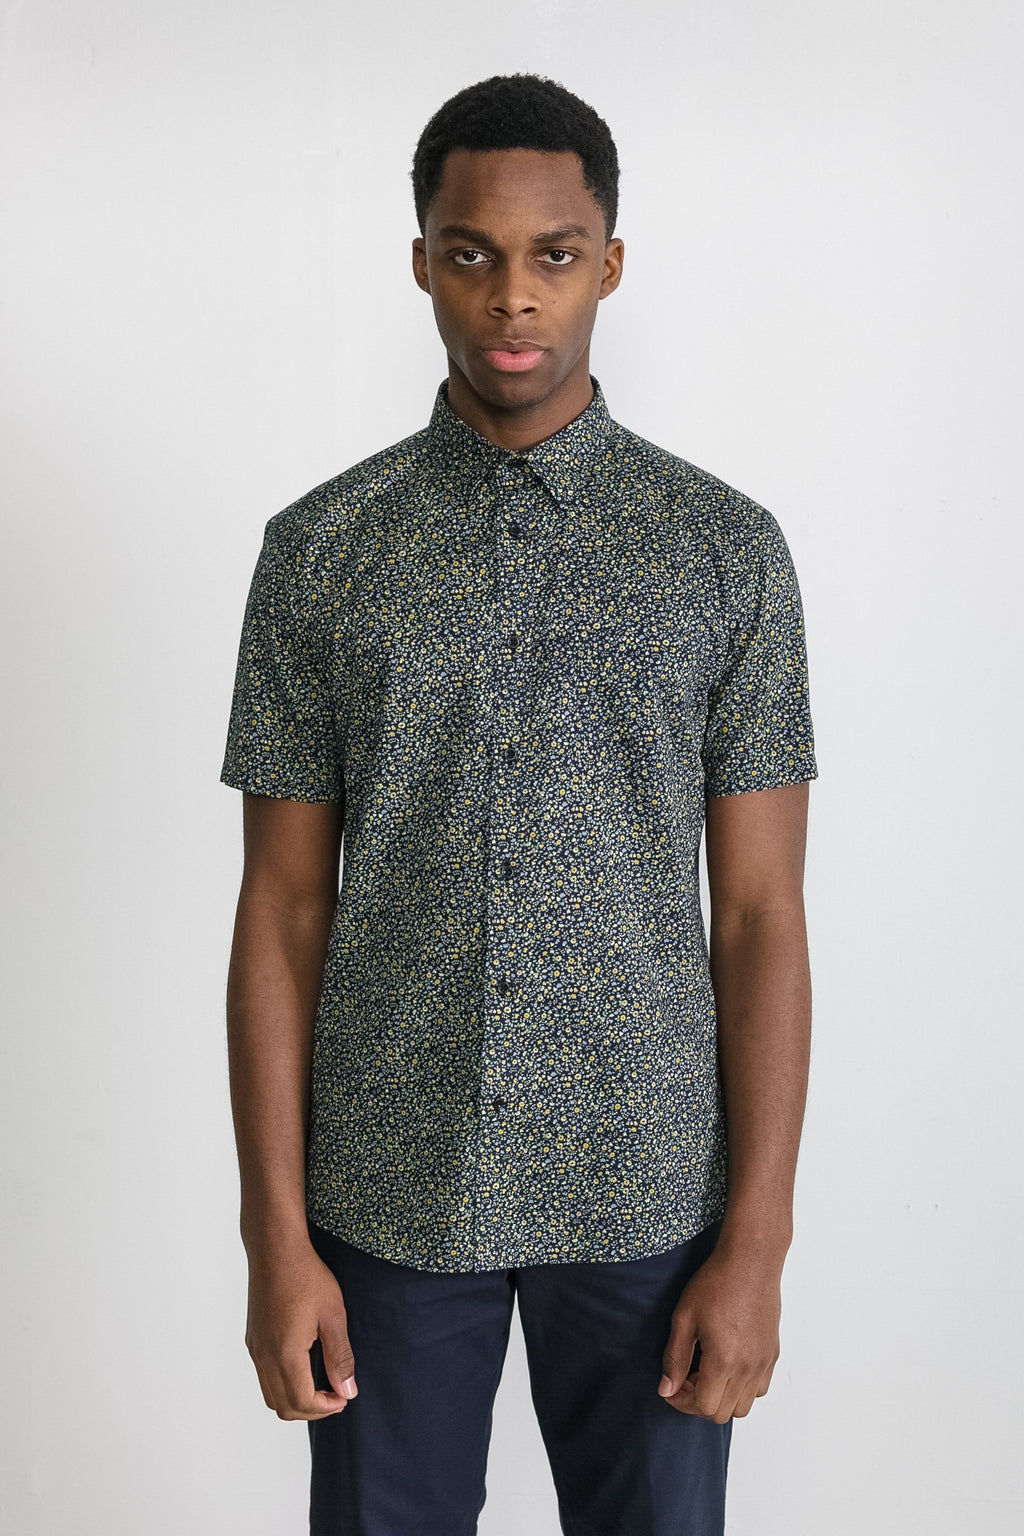 Japanese Floral Print in Navy and Mustard 001